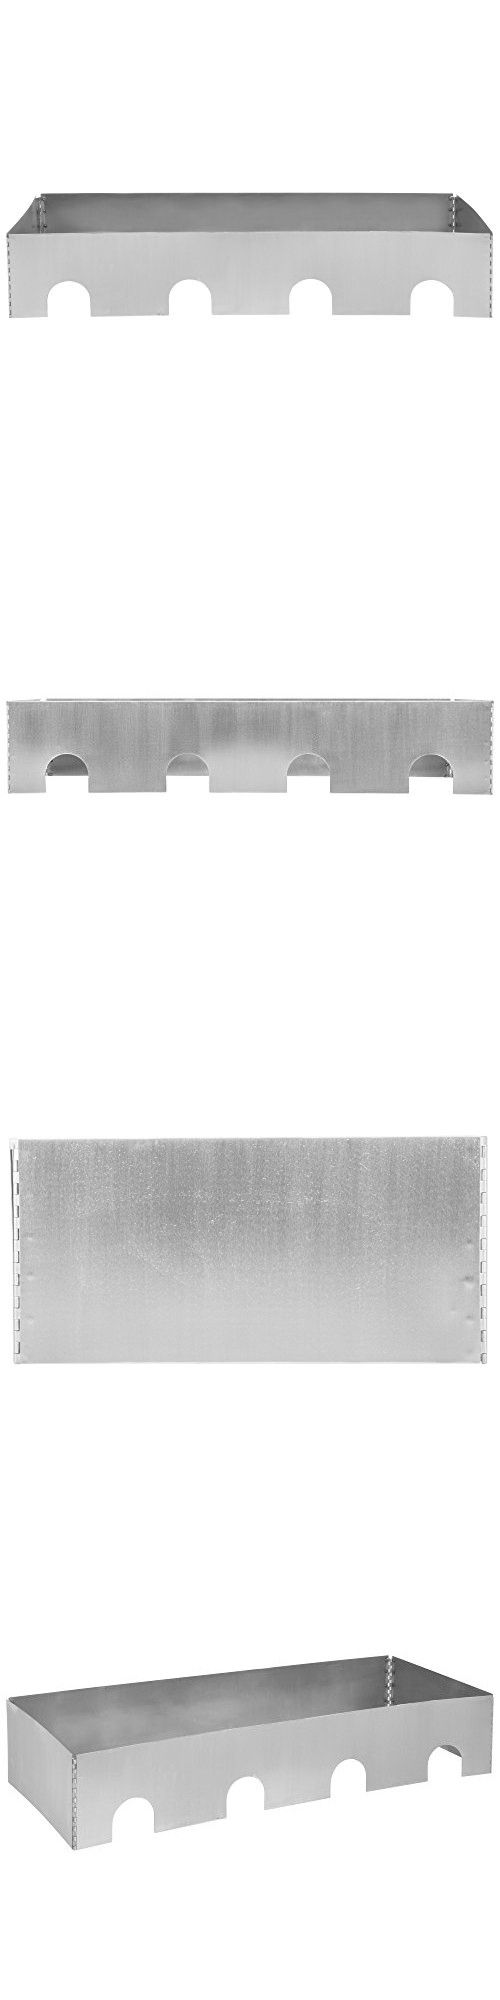 """Tablecraft Caterware CW604BRS 4-Well Collapsible 16 Gauge Brushed Stainless Steel Server - 51 1/2"""" x 20 1/2"""" x 10"""""""